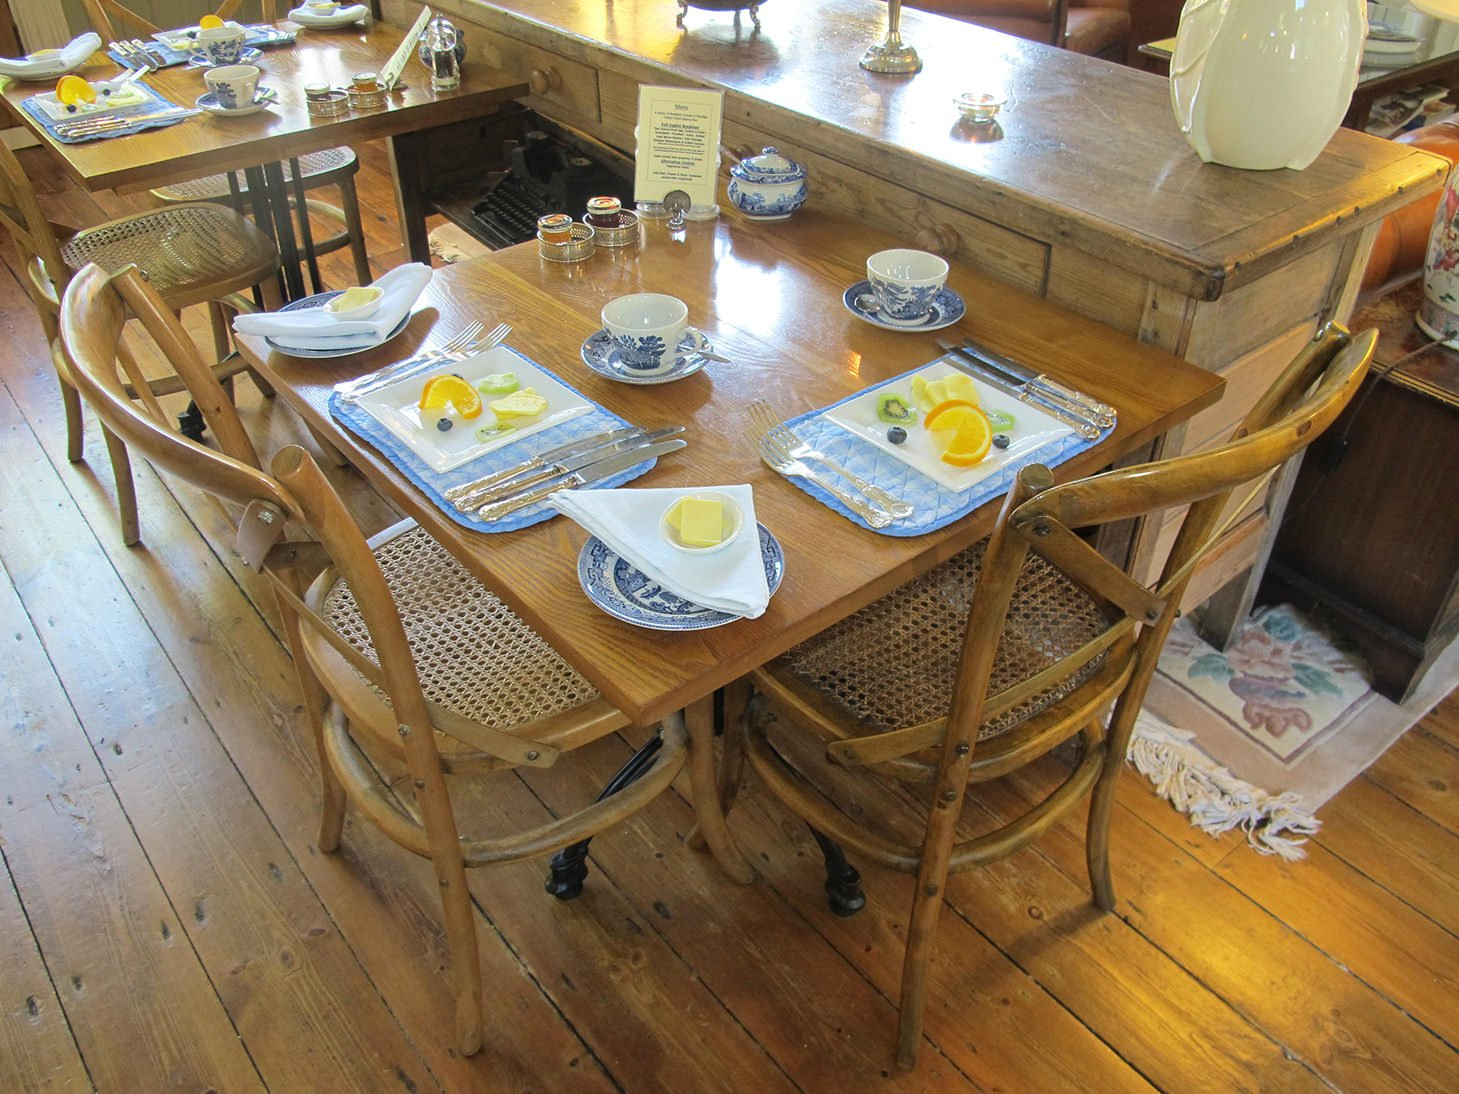 B and B, hotel, The Old Railway Station, breakfast, England, Petworth